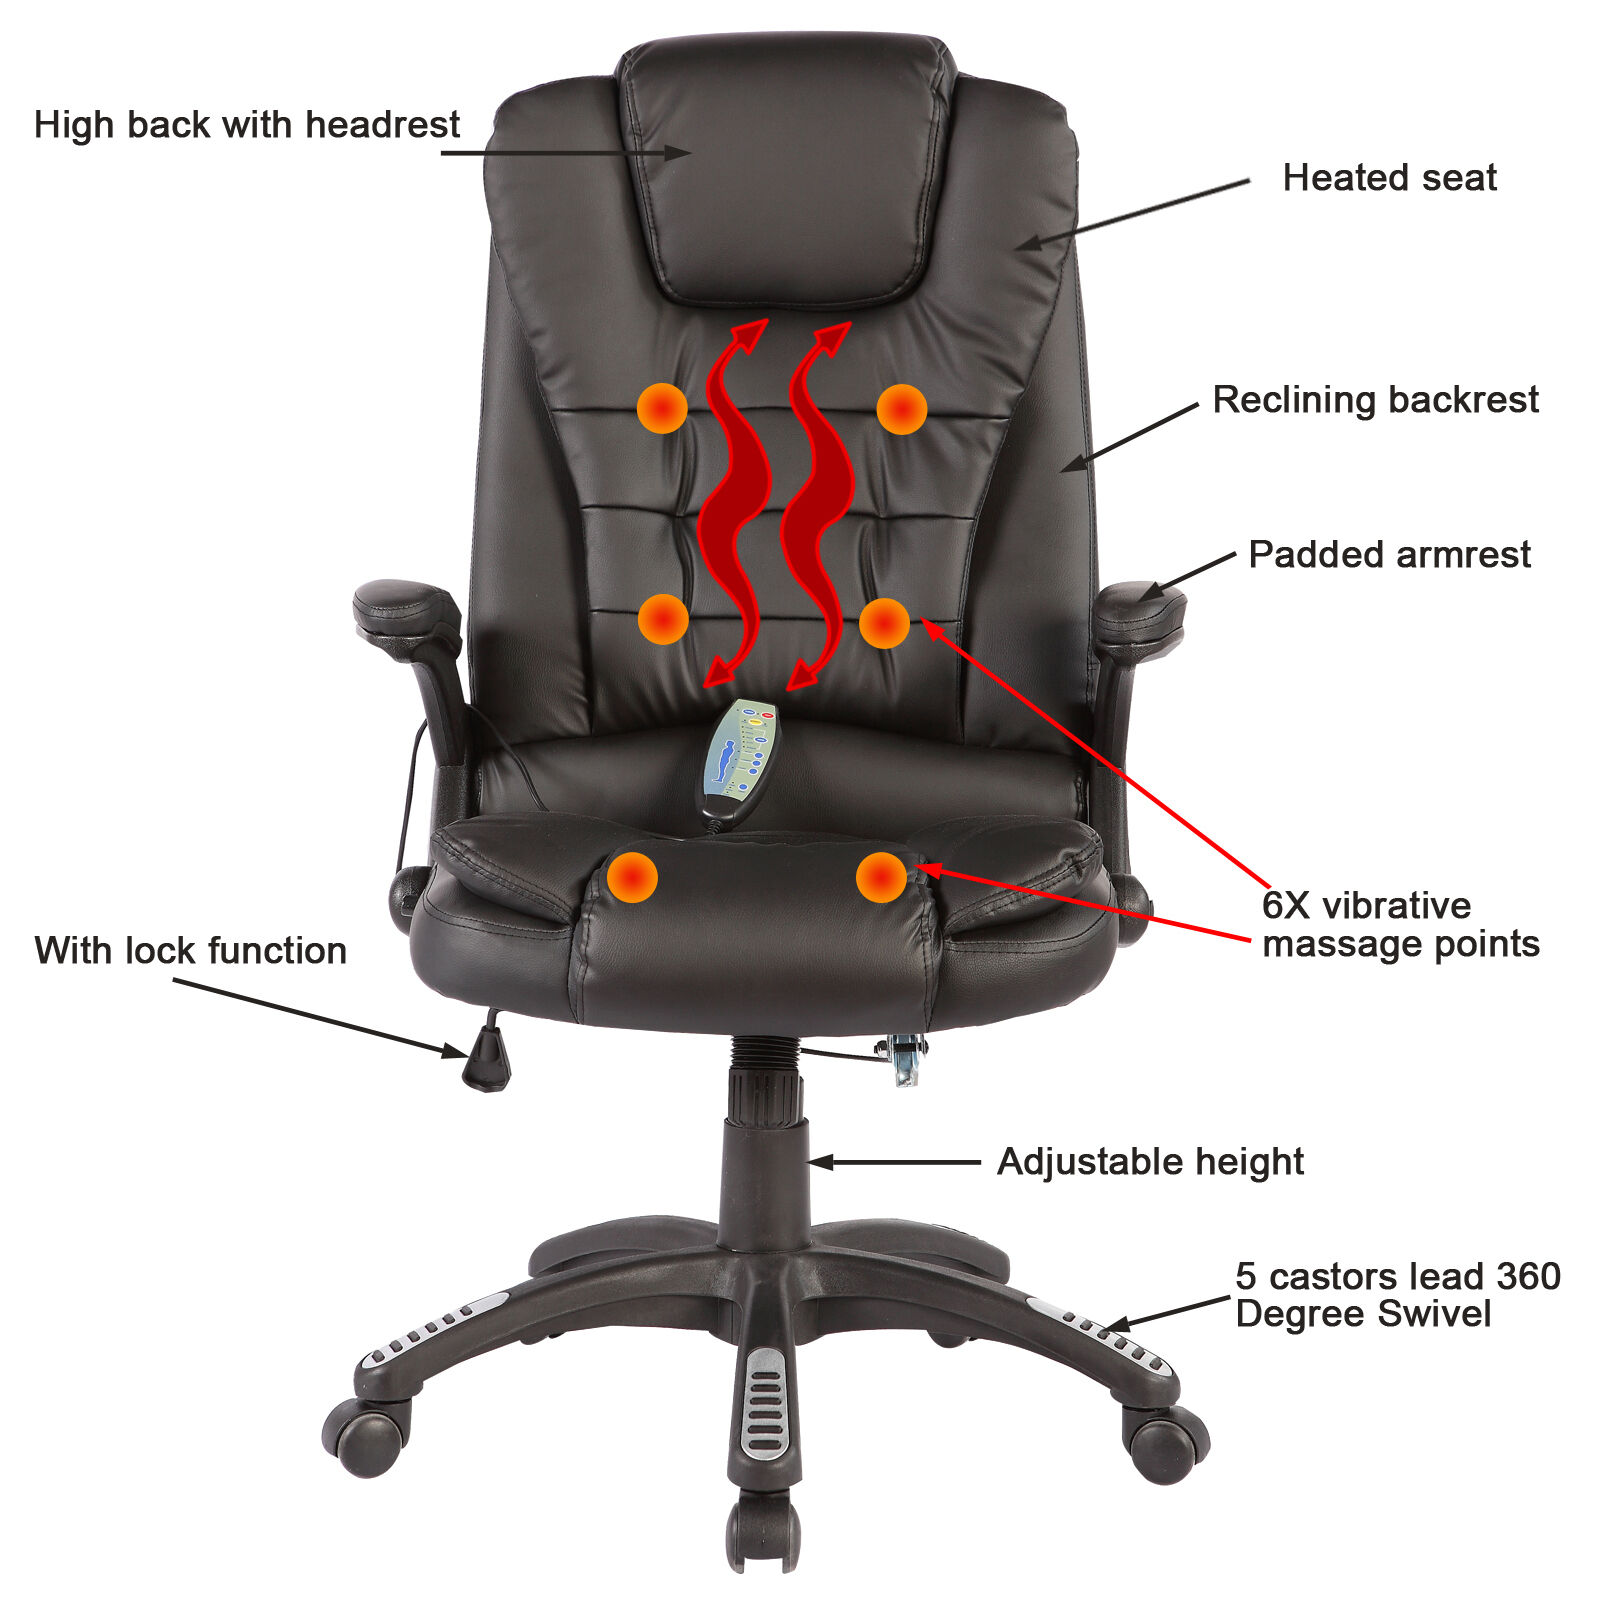 Executive Office Mage Chair Heated Vibrating Ergonomic Computer Desk